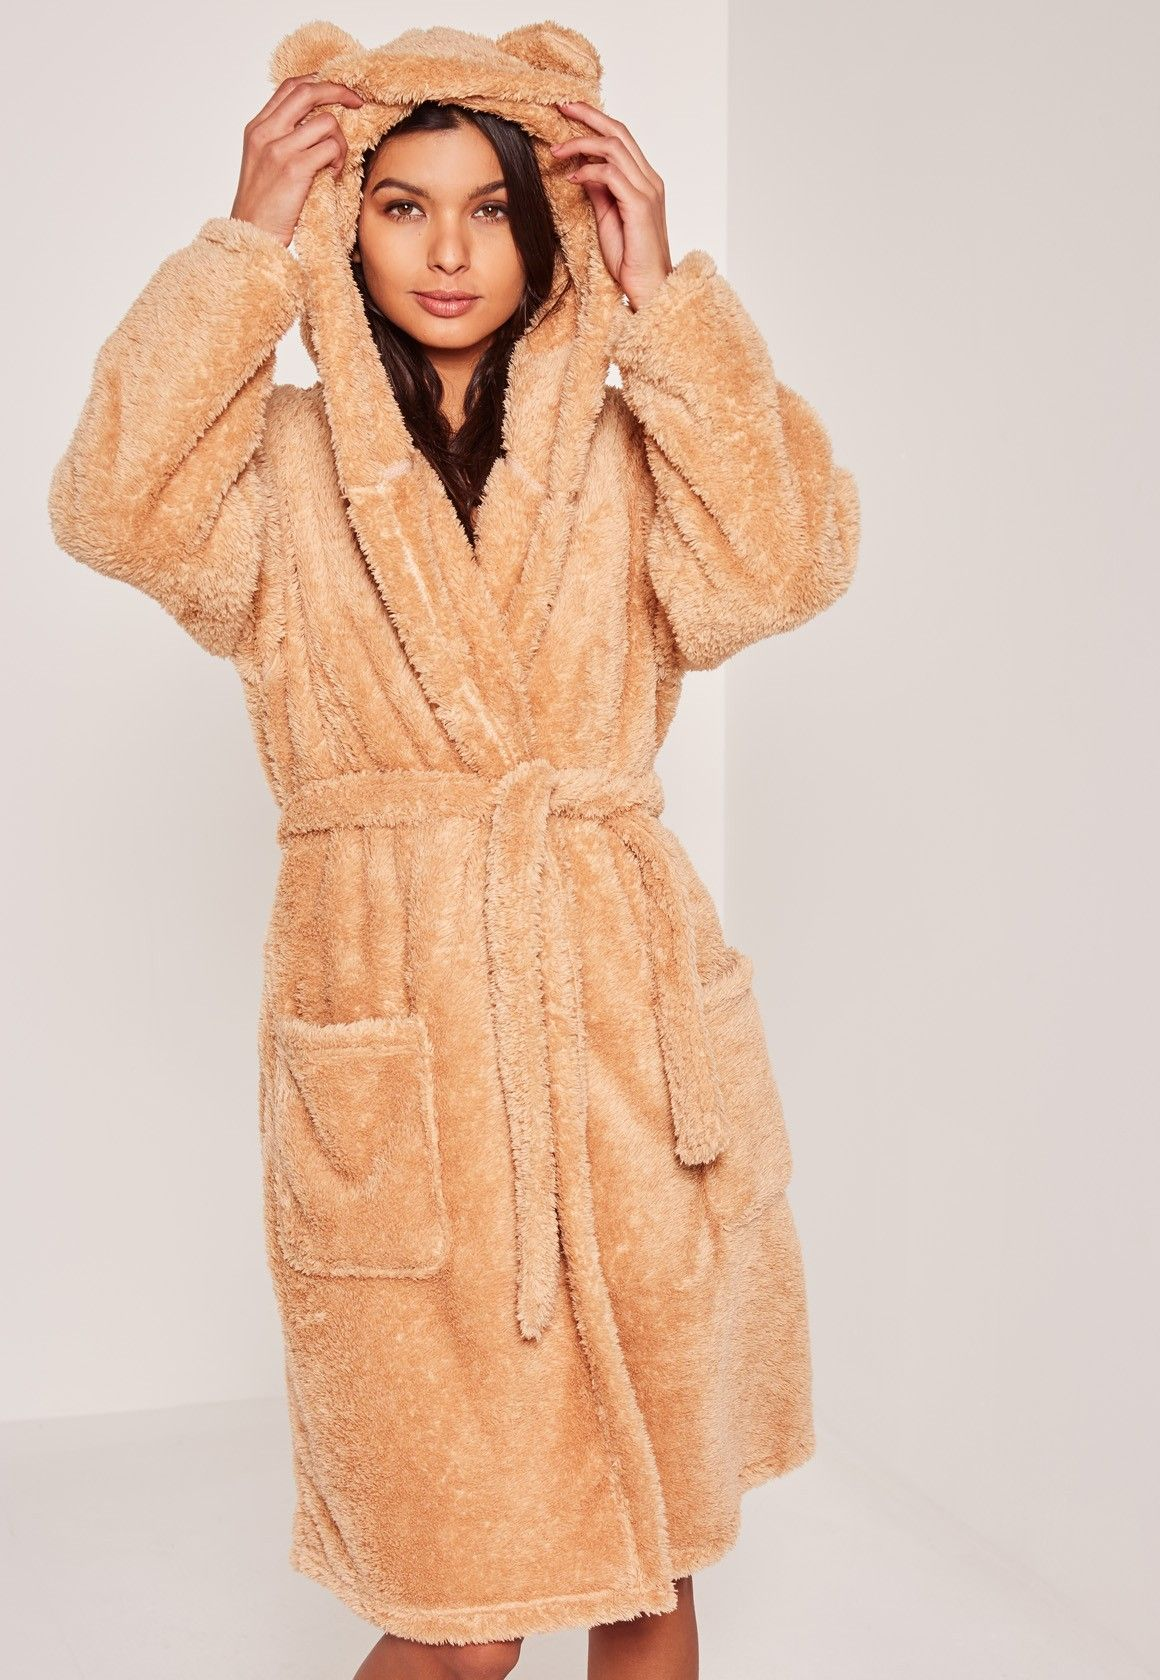 Go for the bear vibes with this brown soft fleece dressing gown with teddy  bear ears to the hood. 5fe0be2d5